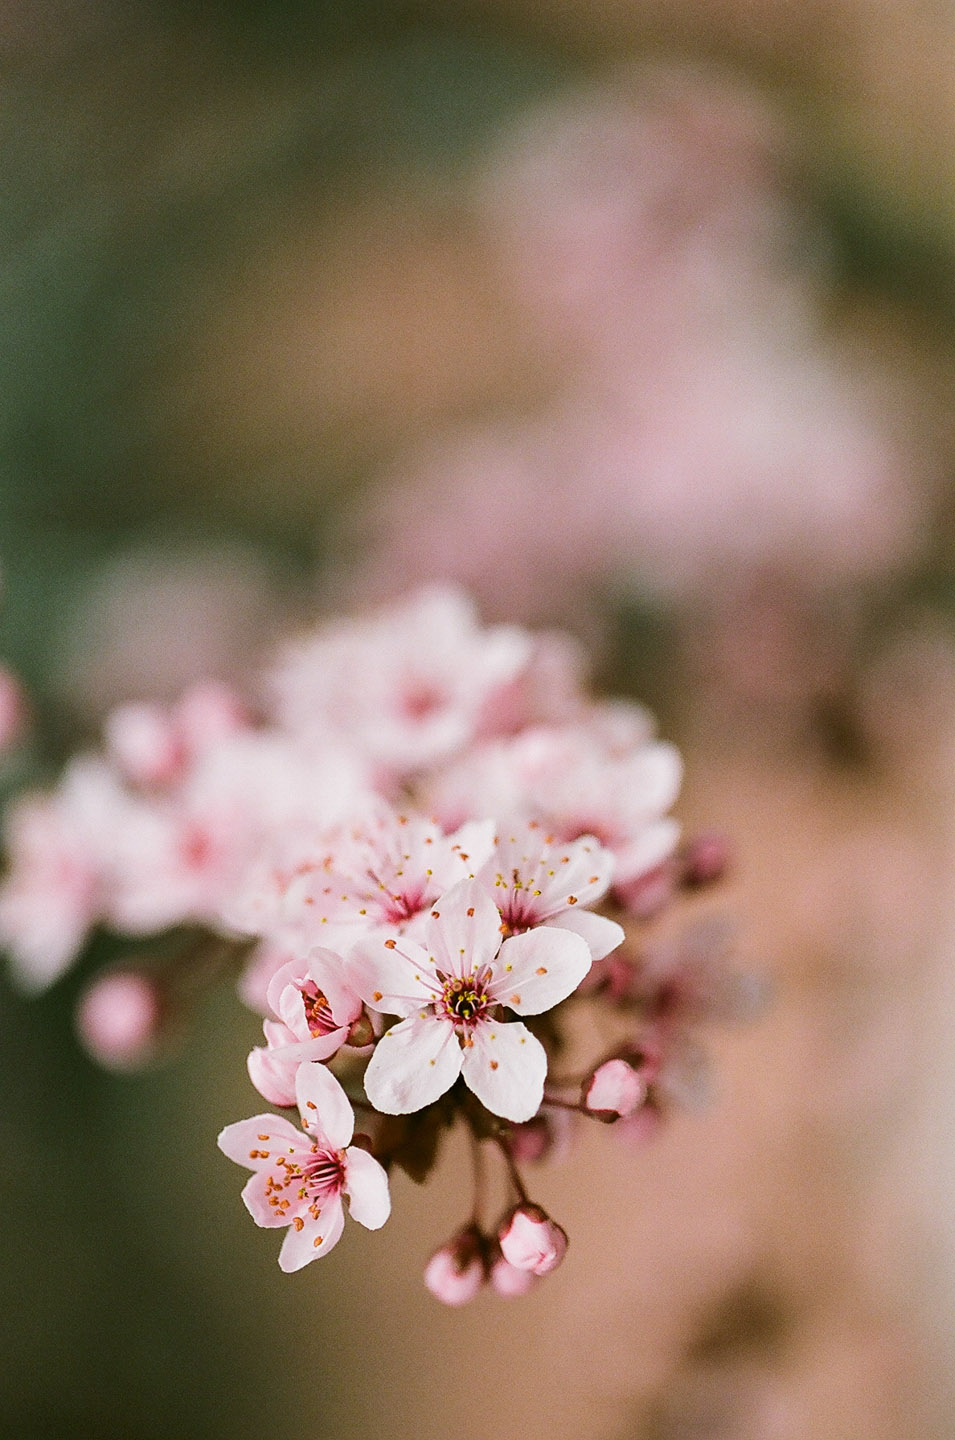 pink cherry blossoms photographed on kodak portra film